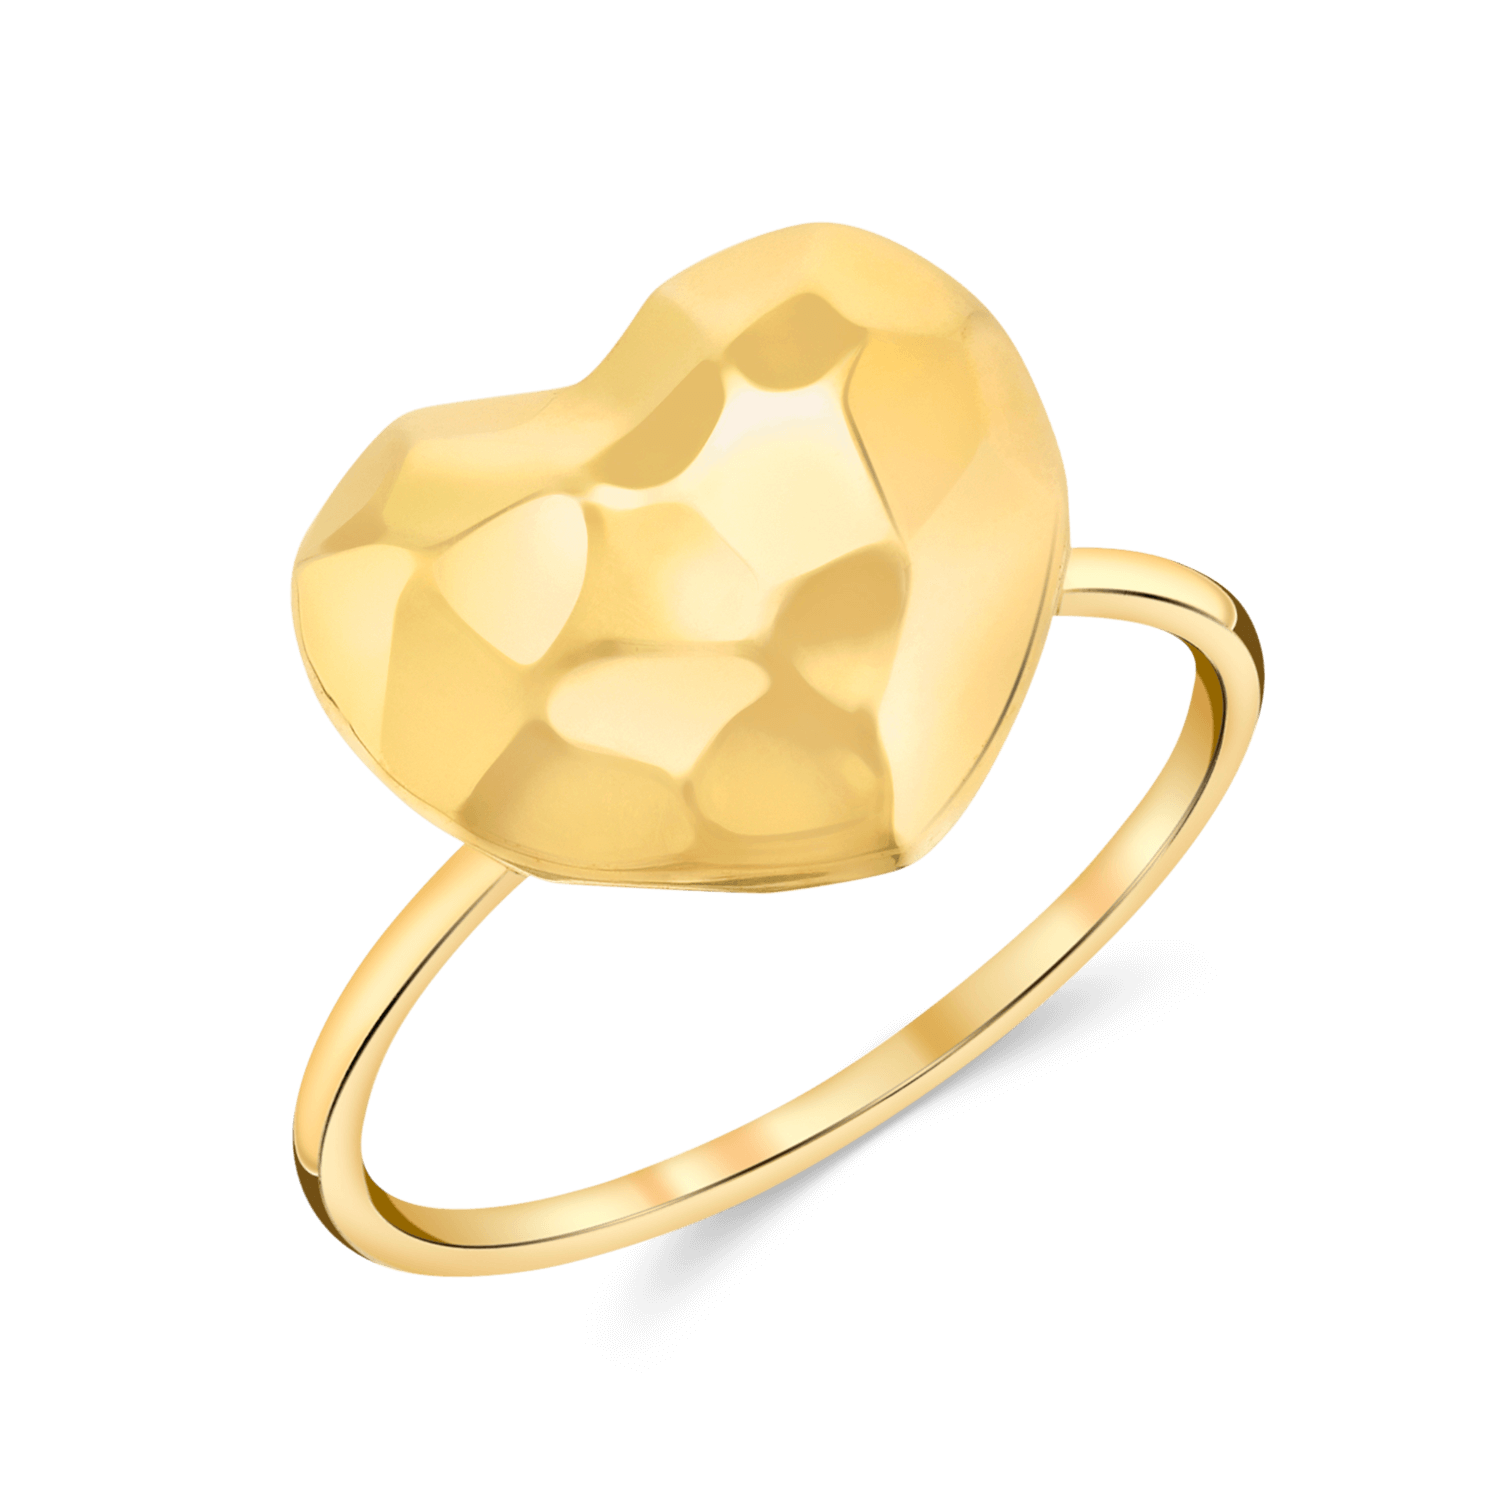 Faceted Heart Ring